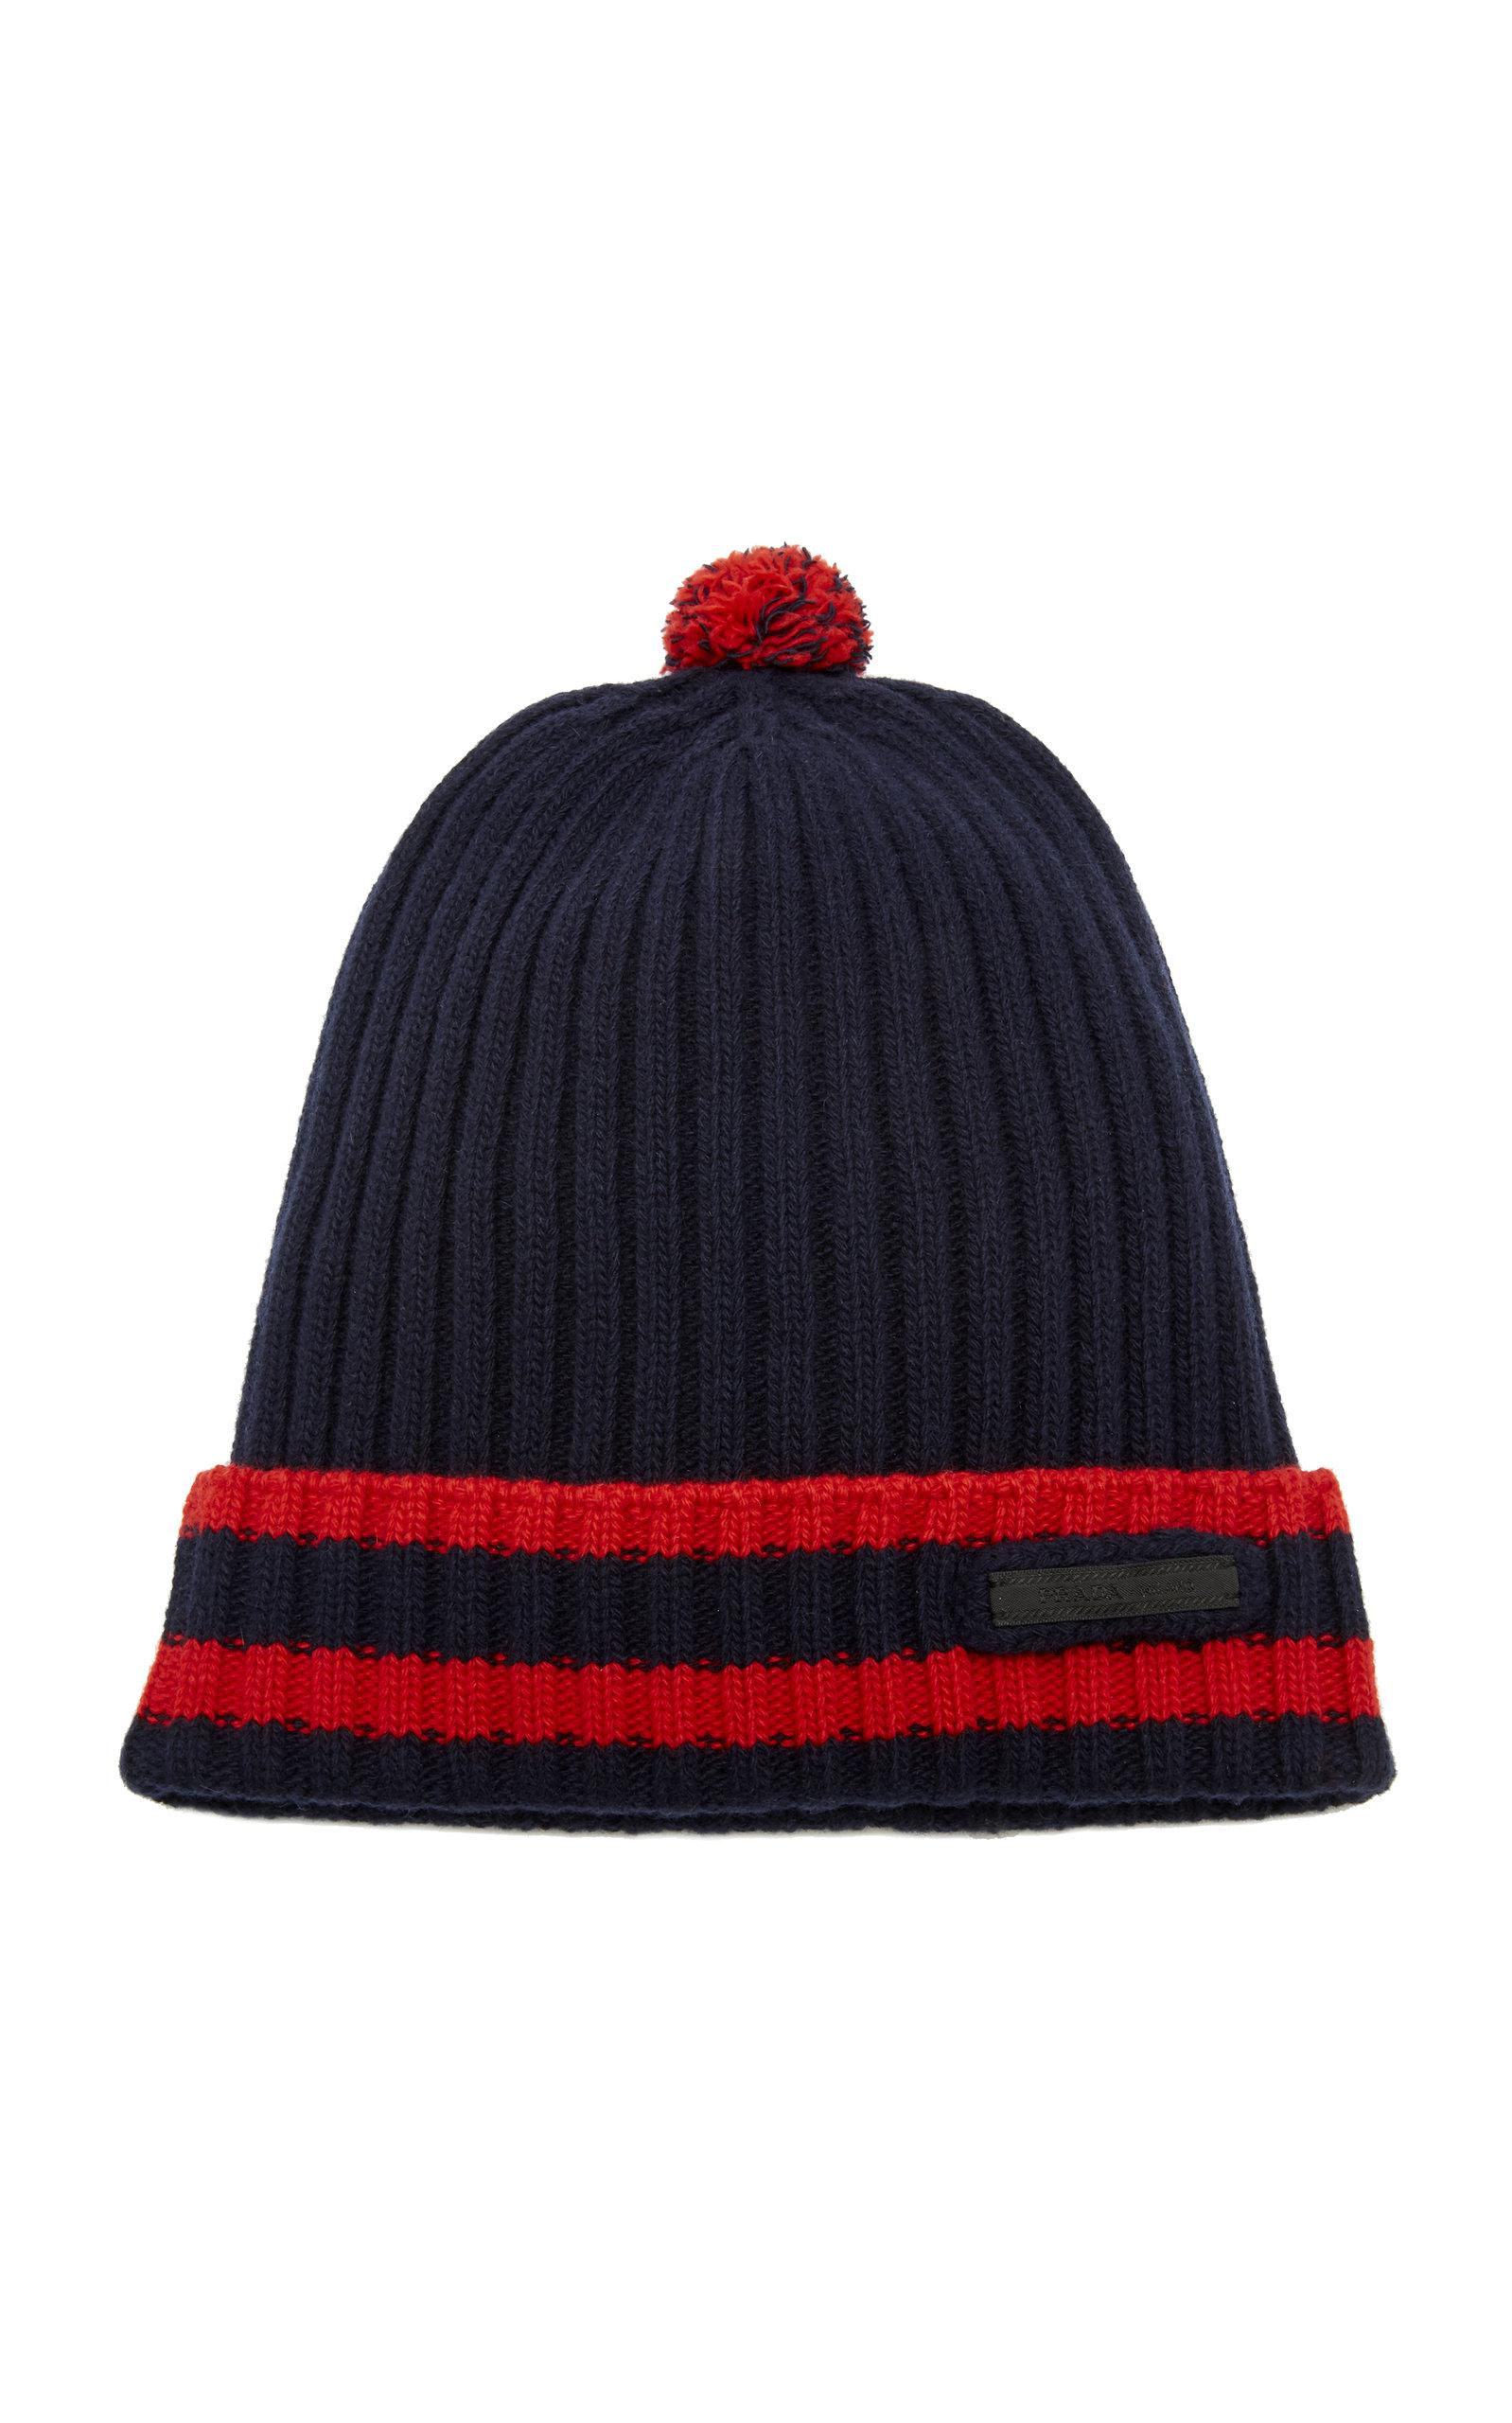 7af107588c9 Prada Striped Wool And Cashmere Beanie in Blue for Men - Lyst